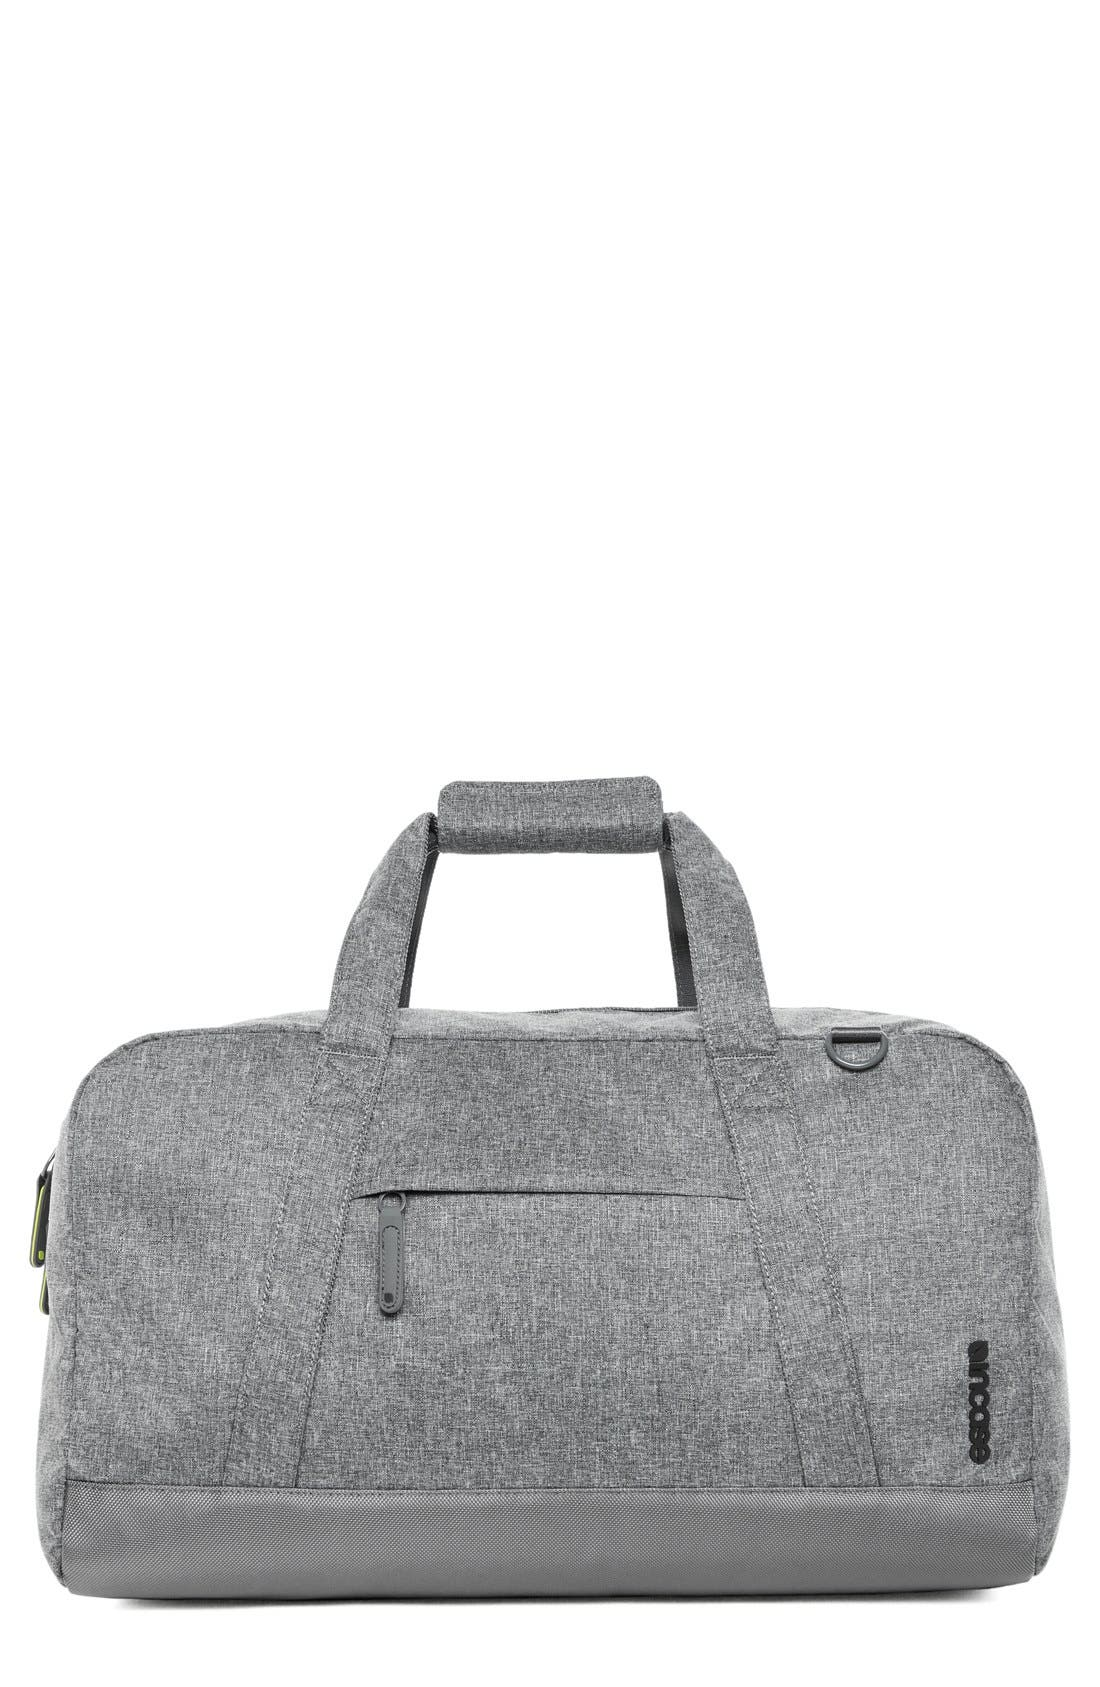 EO Duffel Bag,                         Main,                         color, Heather Grey